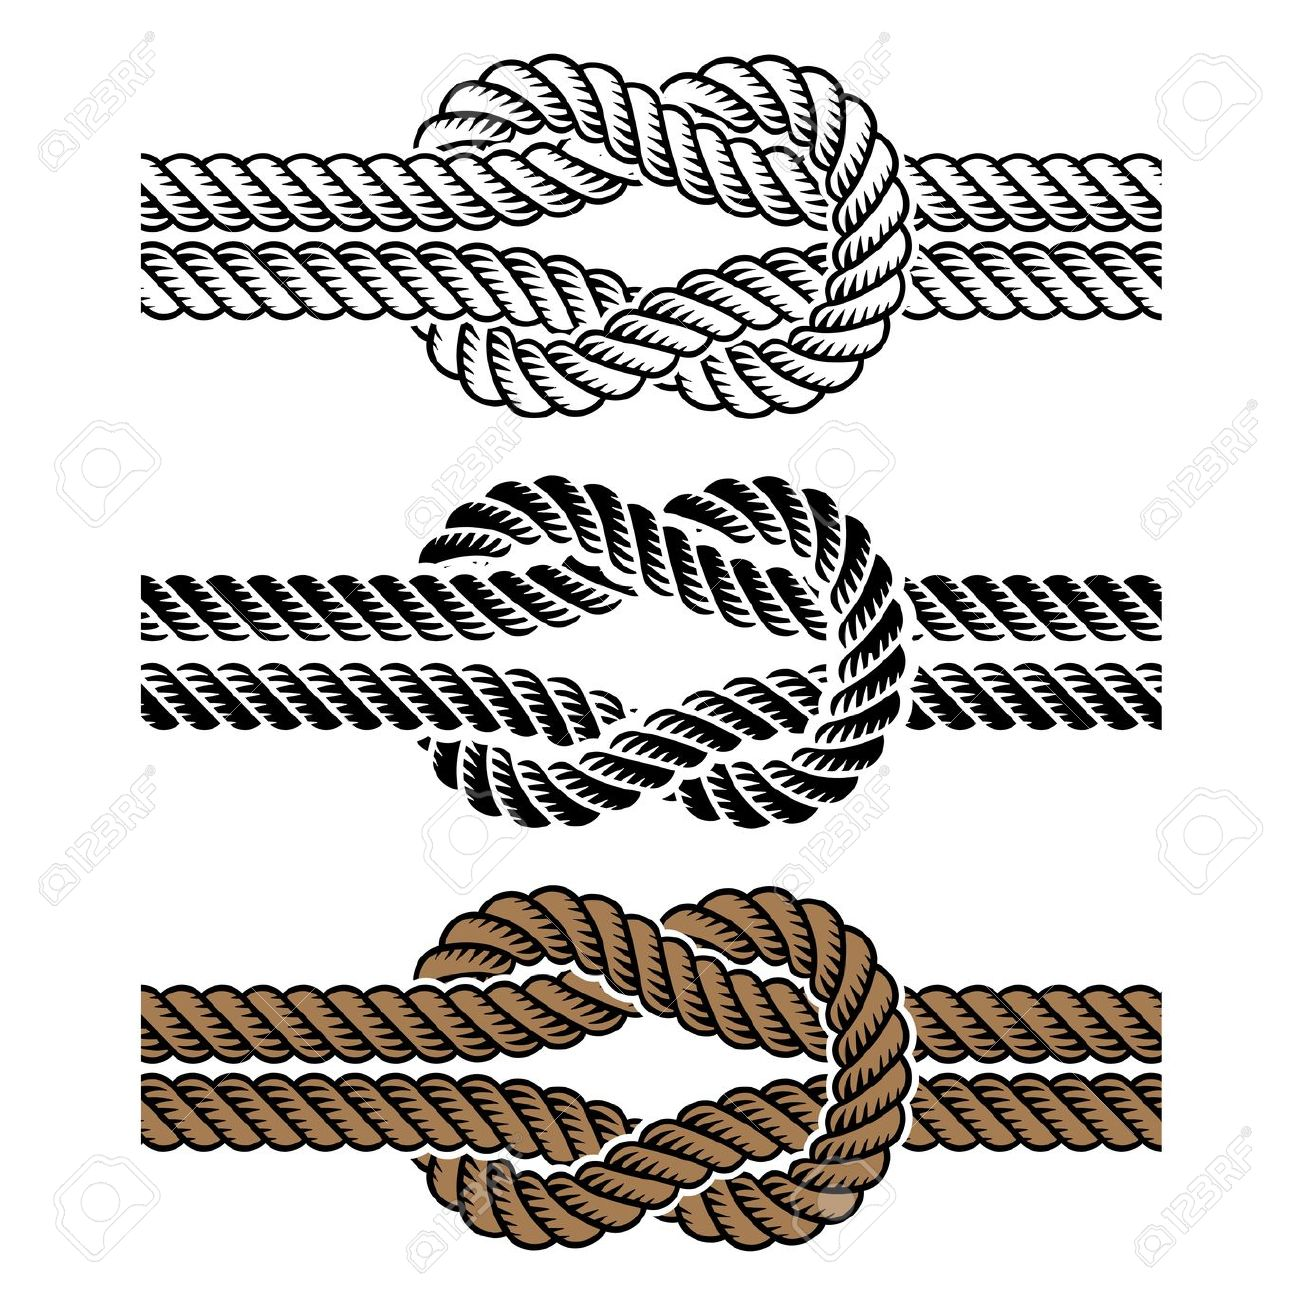 Square knot clipart.